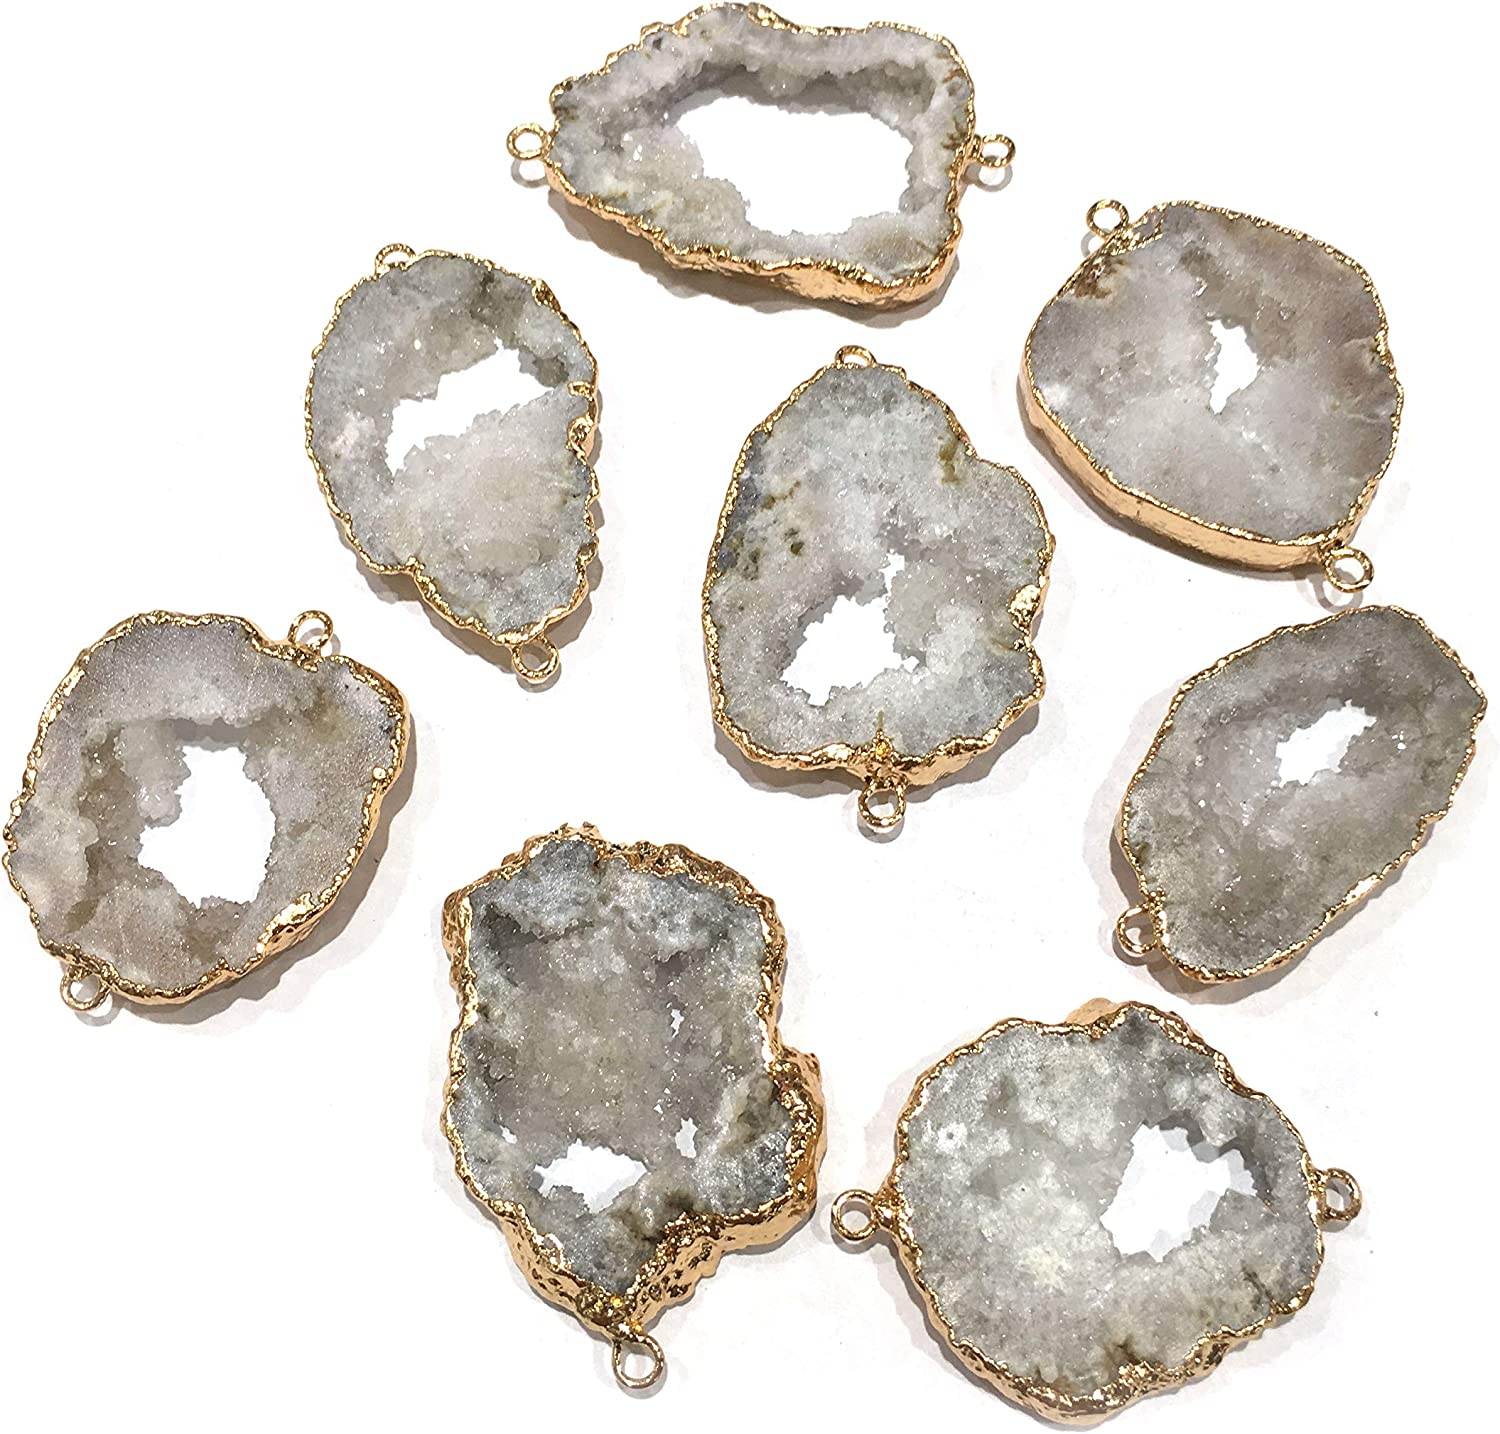 Finding Jewelry DIY Geode Earring Natural Pink Geode Druzy Agate Geode Connectors Geode Druzy 24k Gold Plated Earrings Pairs Connector